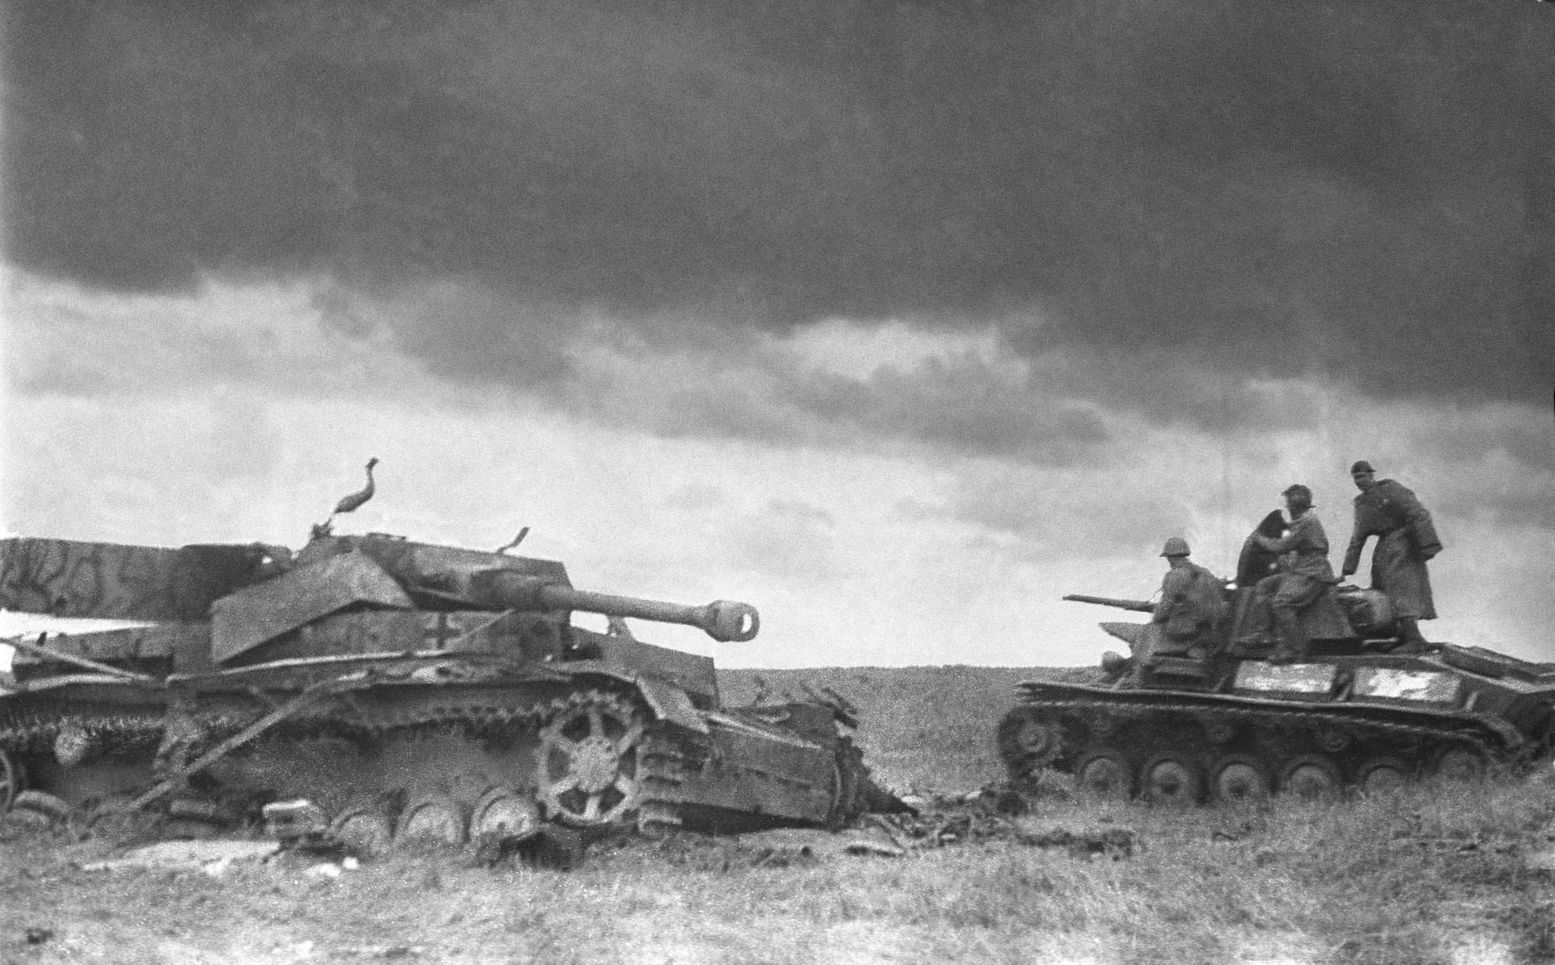 Your History Book Needs Help: The Battle of Kursk Did Not End Nazi